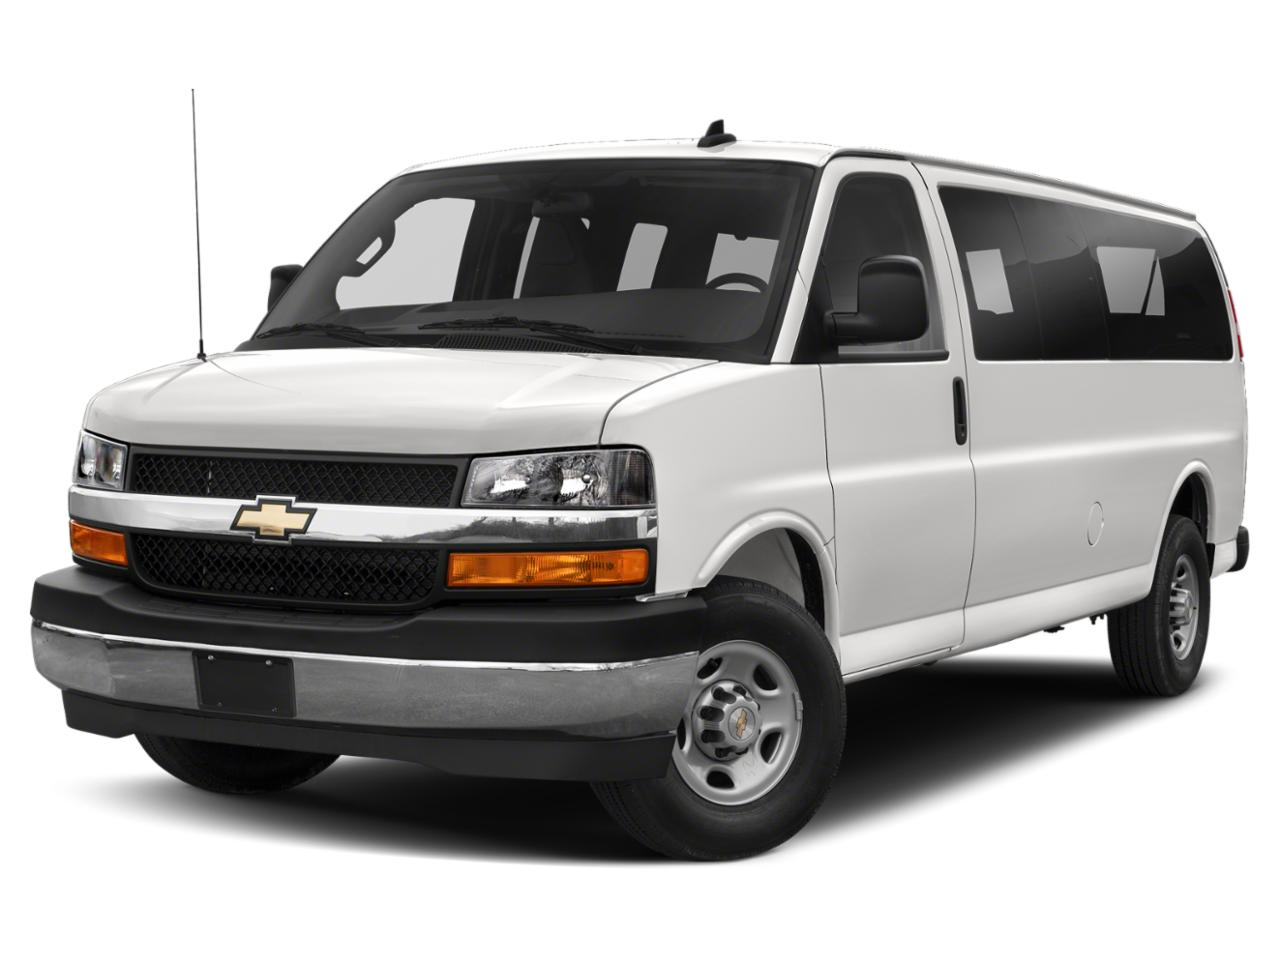 2020 Chevrolet Express Passenger Vehicle Photo in Willoughby Hills, OH 44092